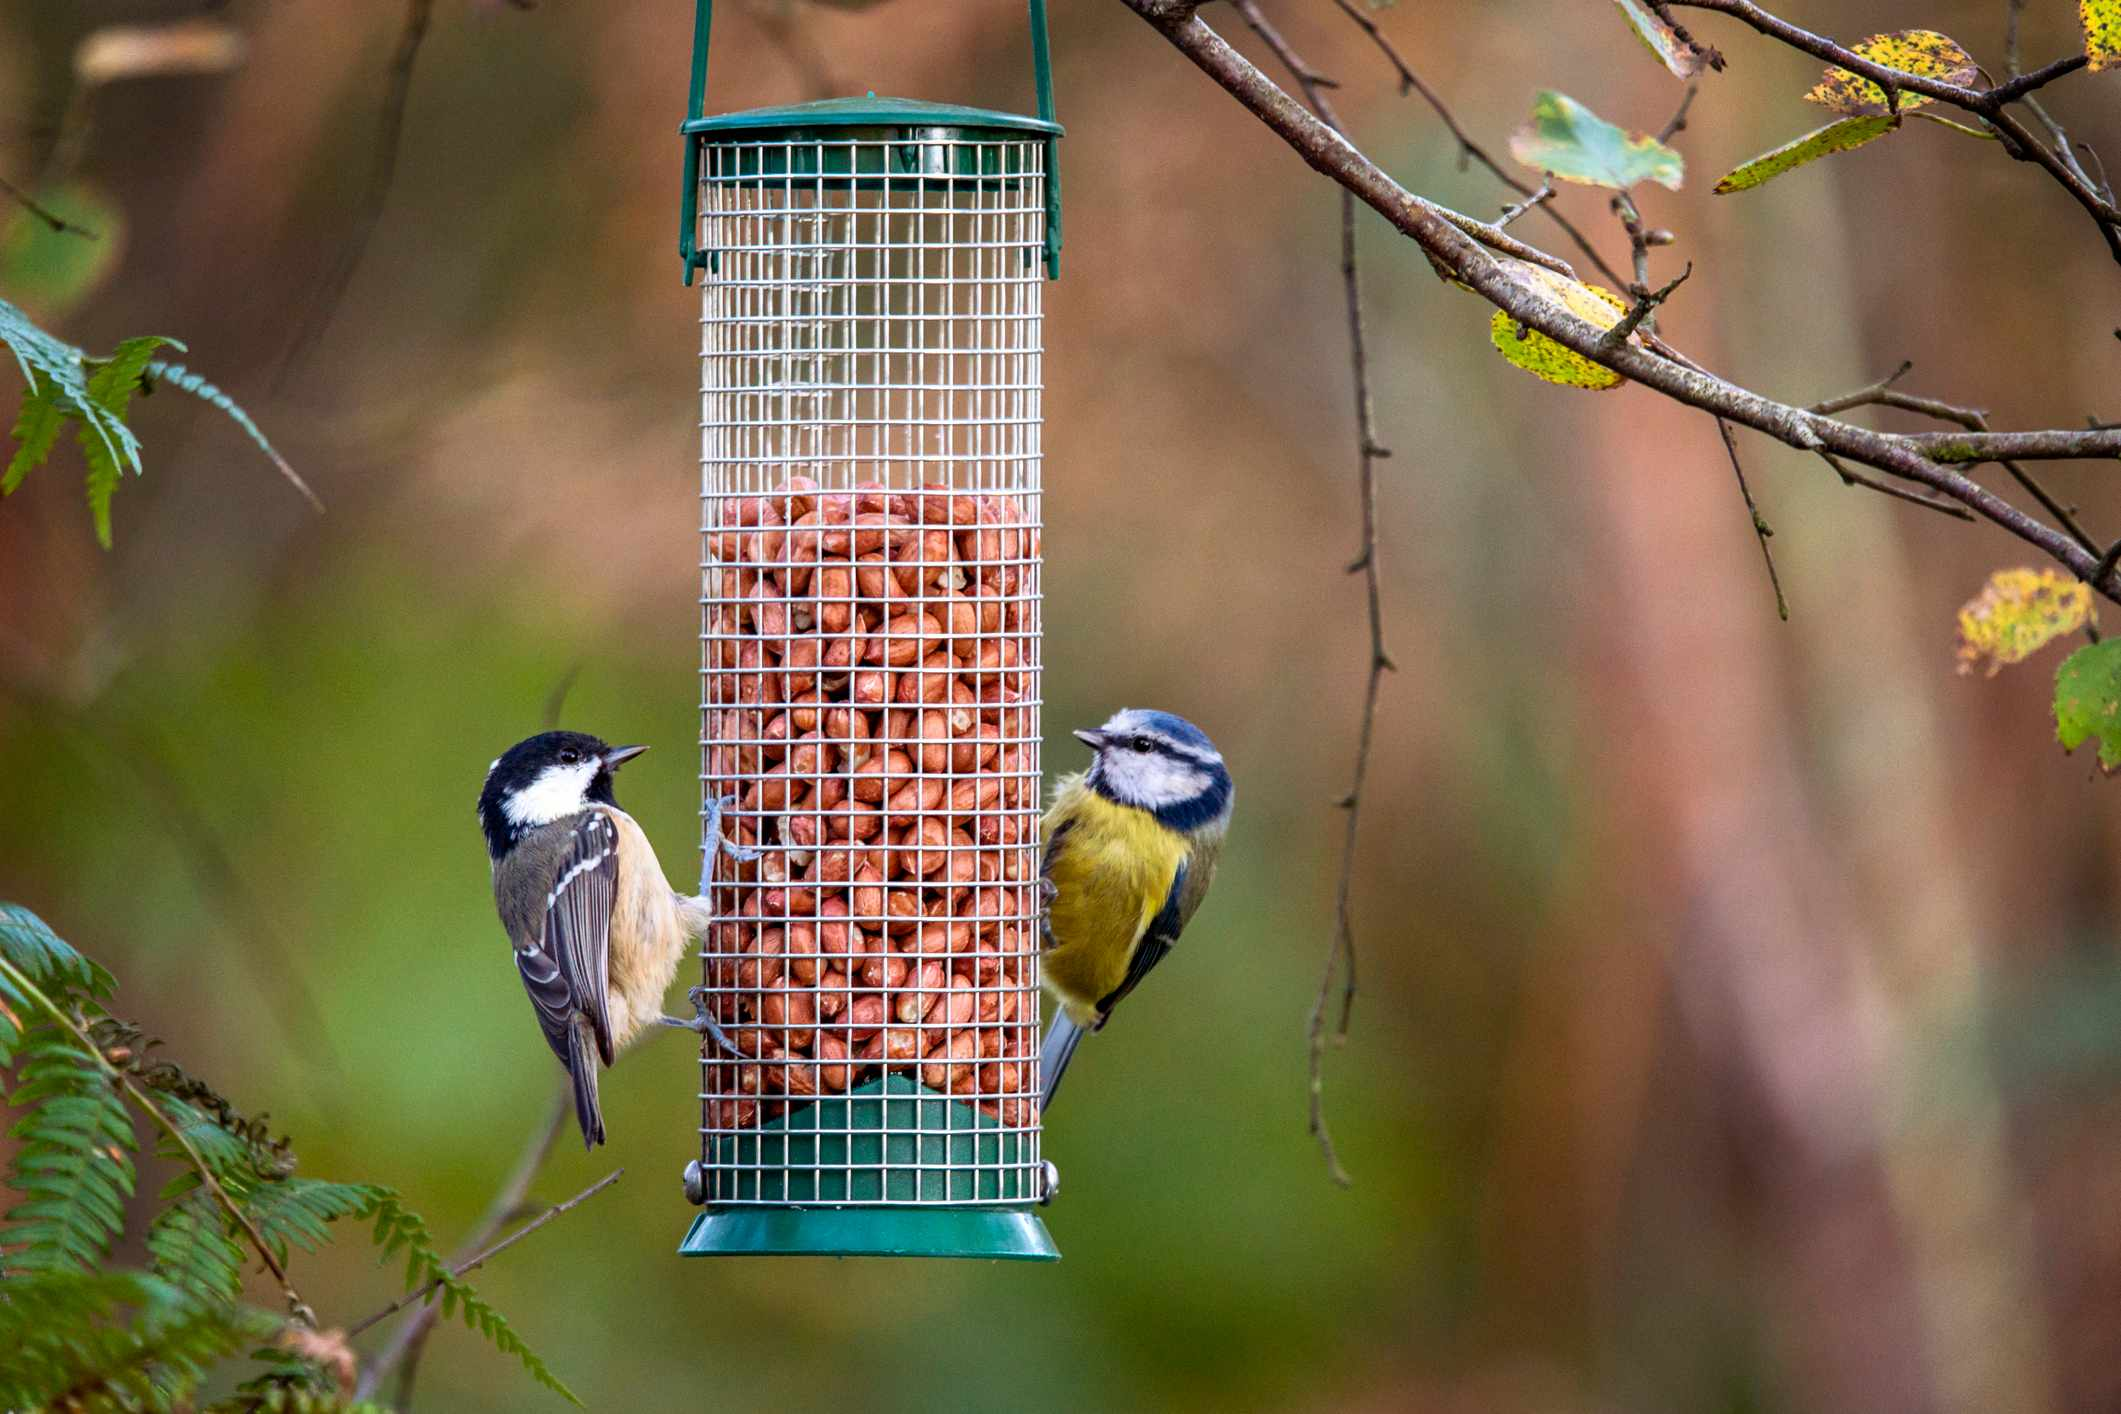 A coal tit and a blue tit feeding on peanuts either side of a hanging bird feeder, in Cumbria UK. © Fiona McAllister/Getty